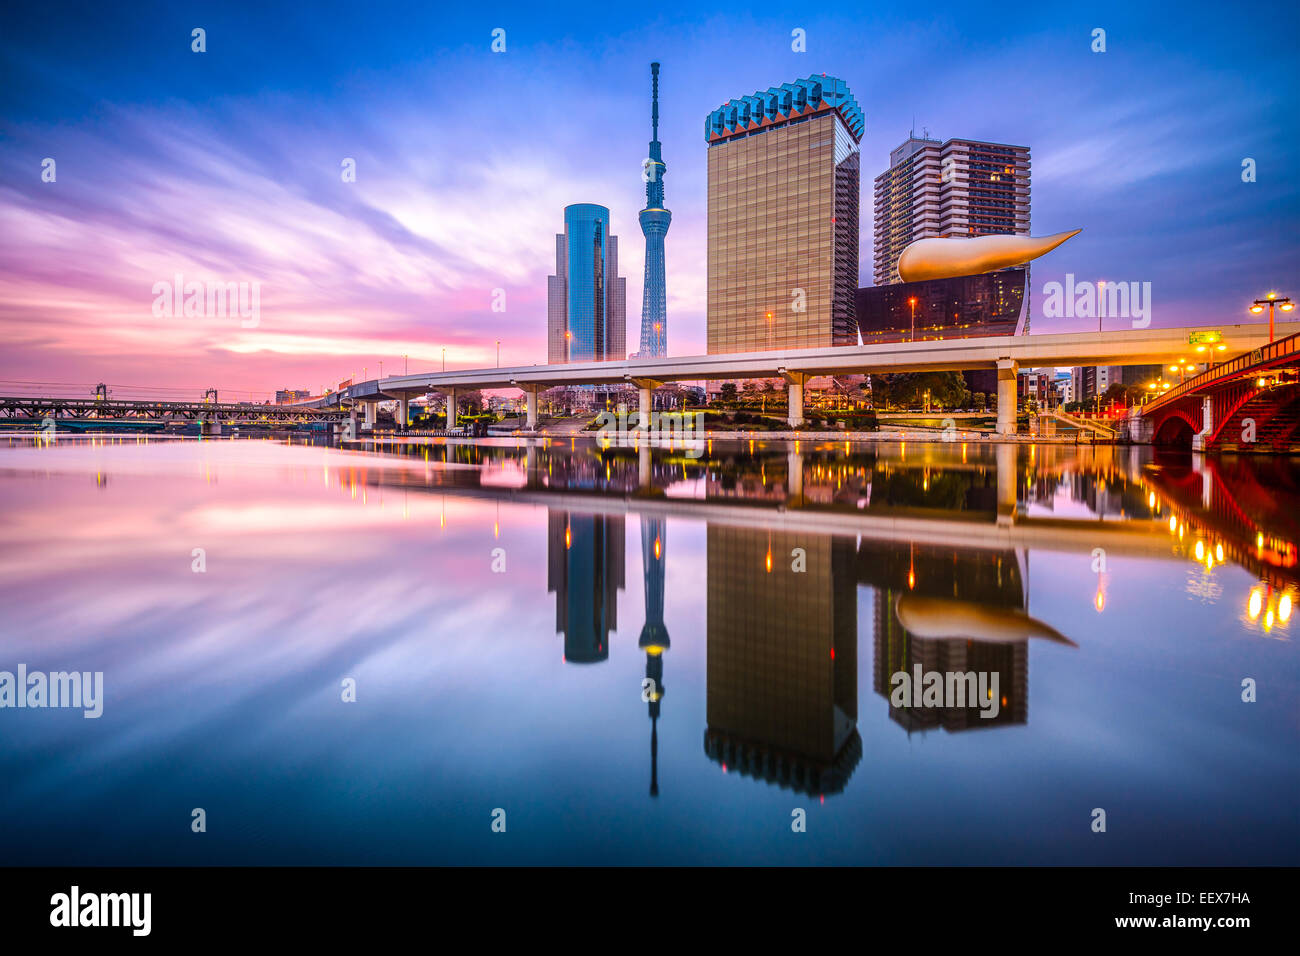 Tokyo, Japan skyline on the Sumida River at dawn. Stock Photo